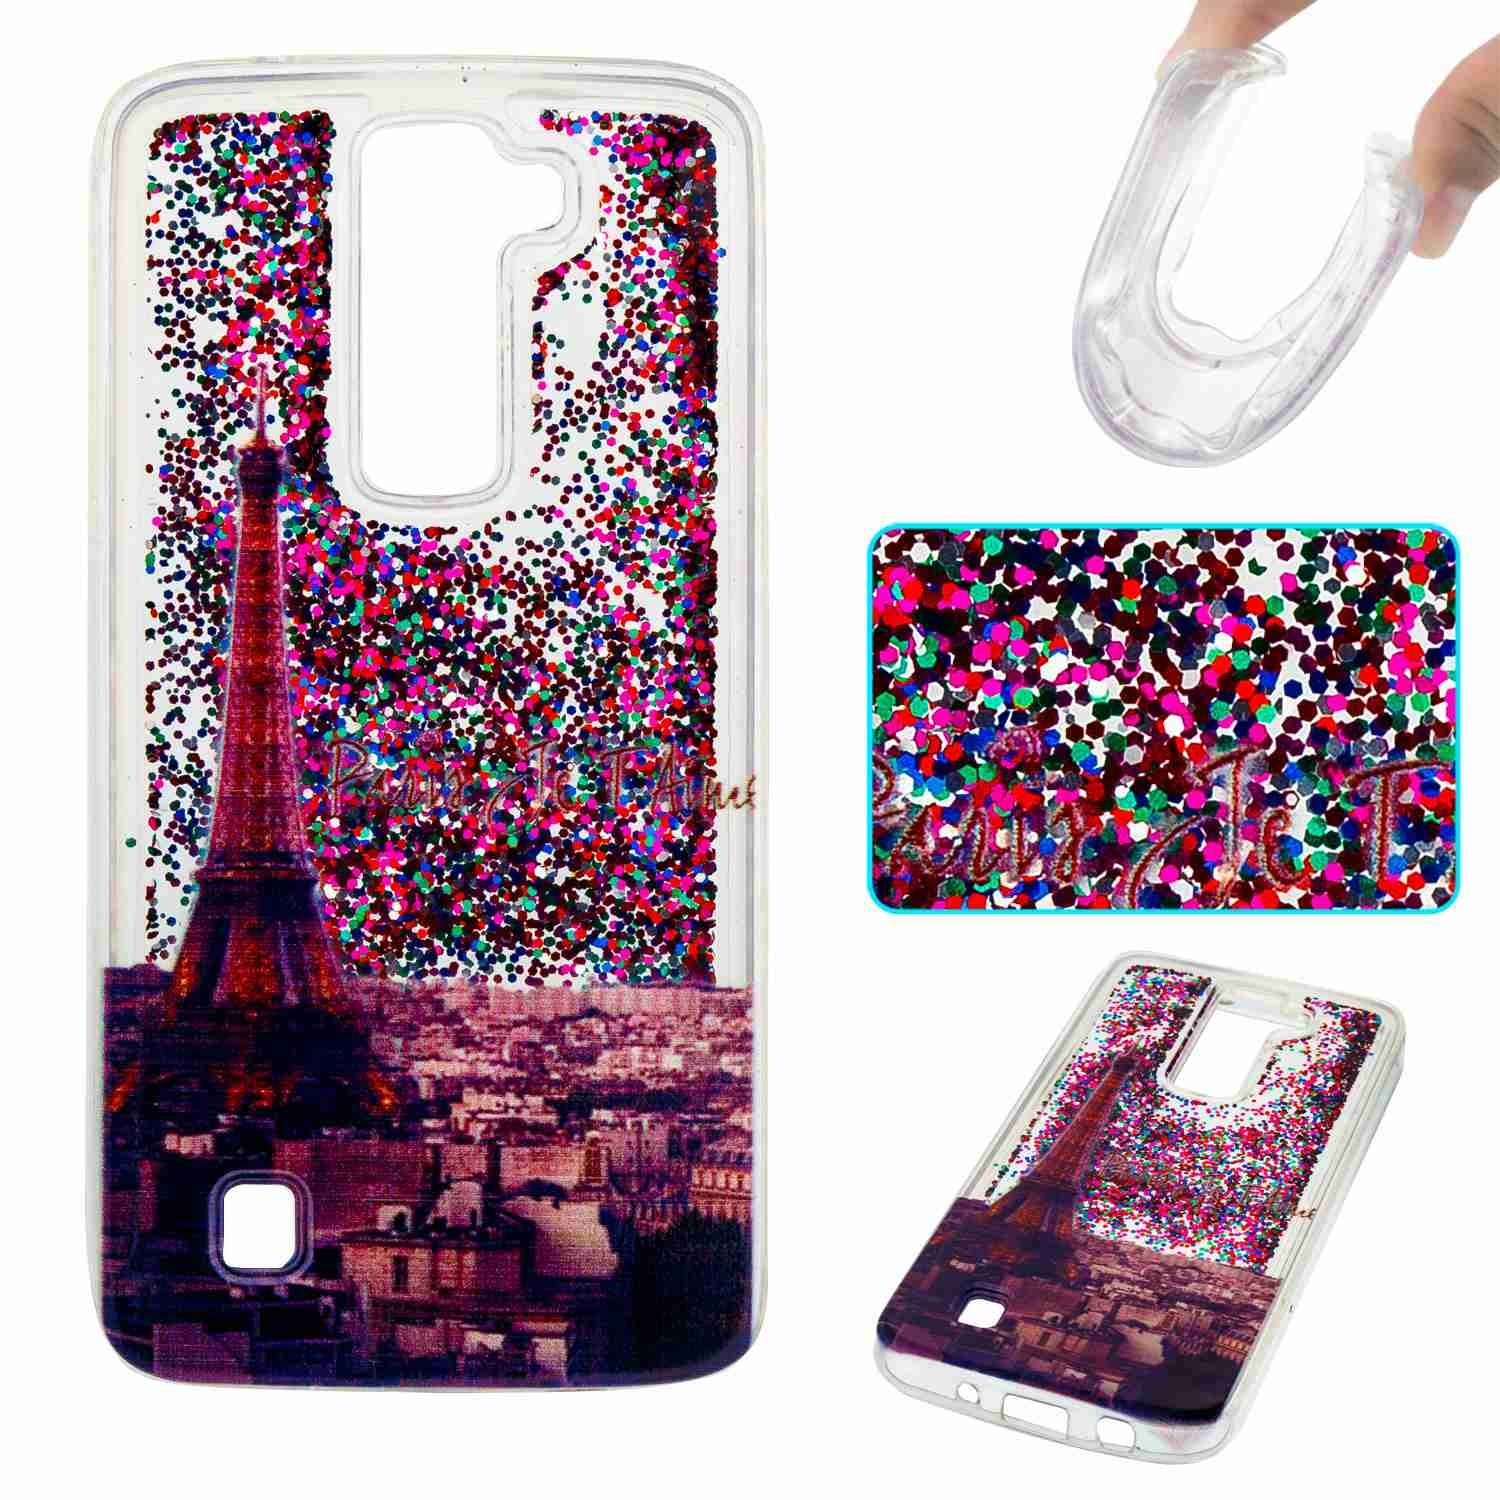 STENES LG K8 Case - 3D Creative Luxury Bling Glitter Sparkle Liquid Case Infused With Glitter and Stars Moving Quicksand Soft Case For LG Phoenix 2 /Escape 3 /LG K8 (2016) - Eiffel Tower